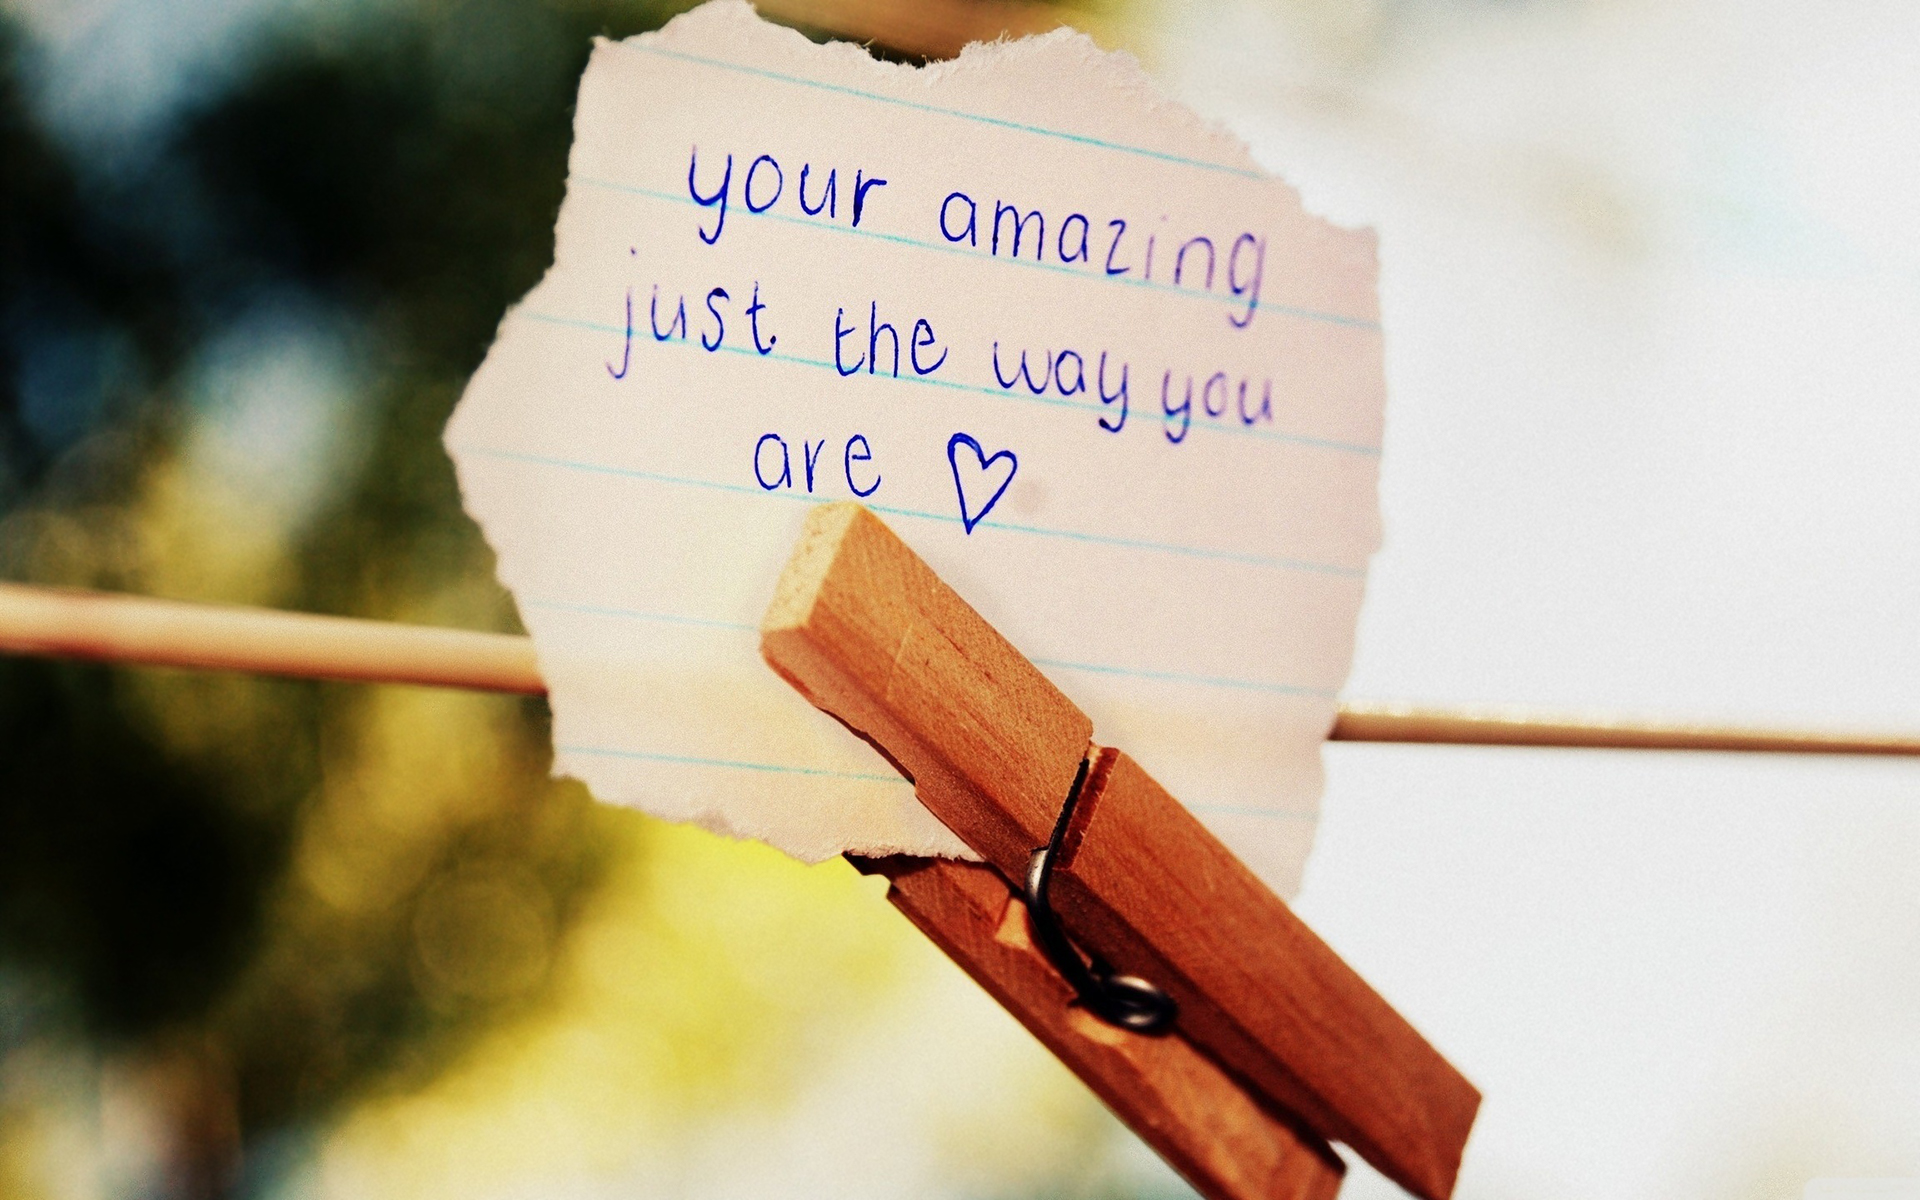 You are amazing 6957824 1920x1200